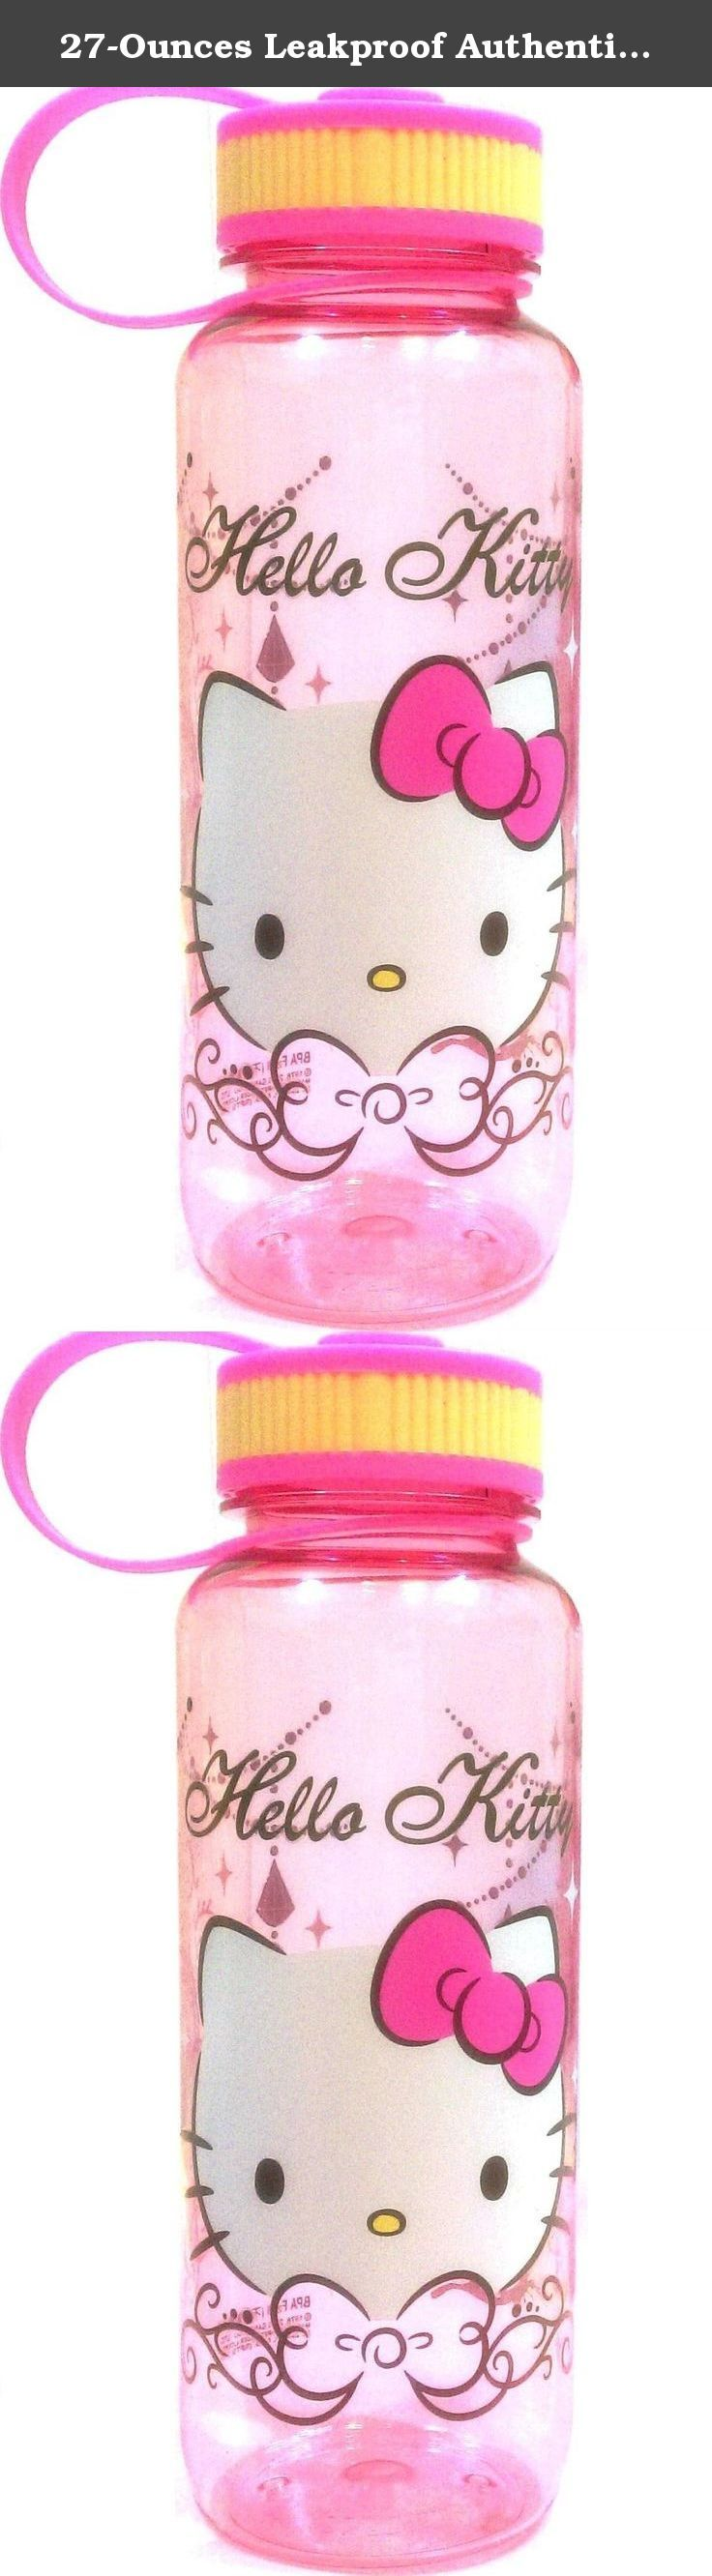 27-Ounces Leakproof Authentic Hello Kitty Tritan BPA Free Water Bottle with Removable Inner Adapter. Made of U.S. Food and Drug Administration (FDA) approved material - Tritan copolyester (BPA FREE. All items with plastic food-contact surfaces are made with plastics that do not contain the potentially harmful chemical Bisphenol-A).